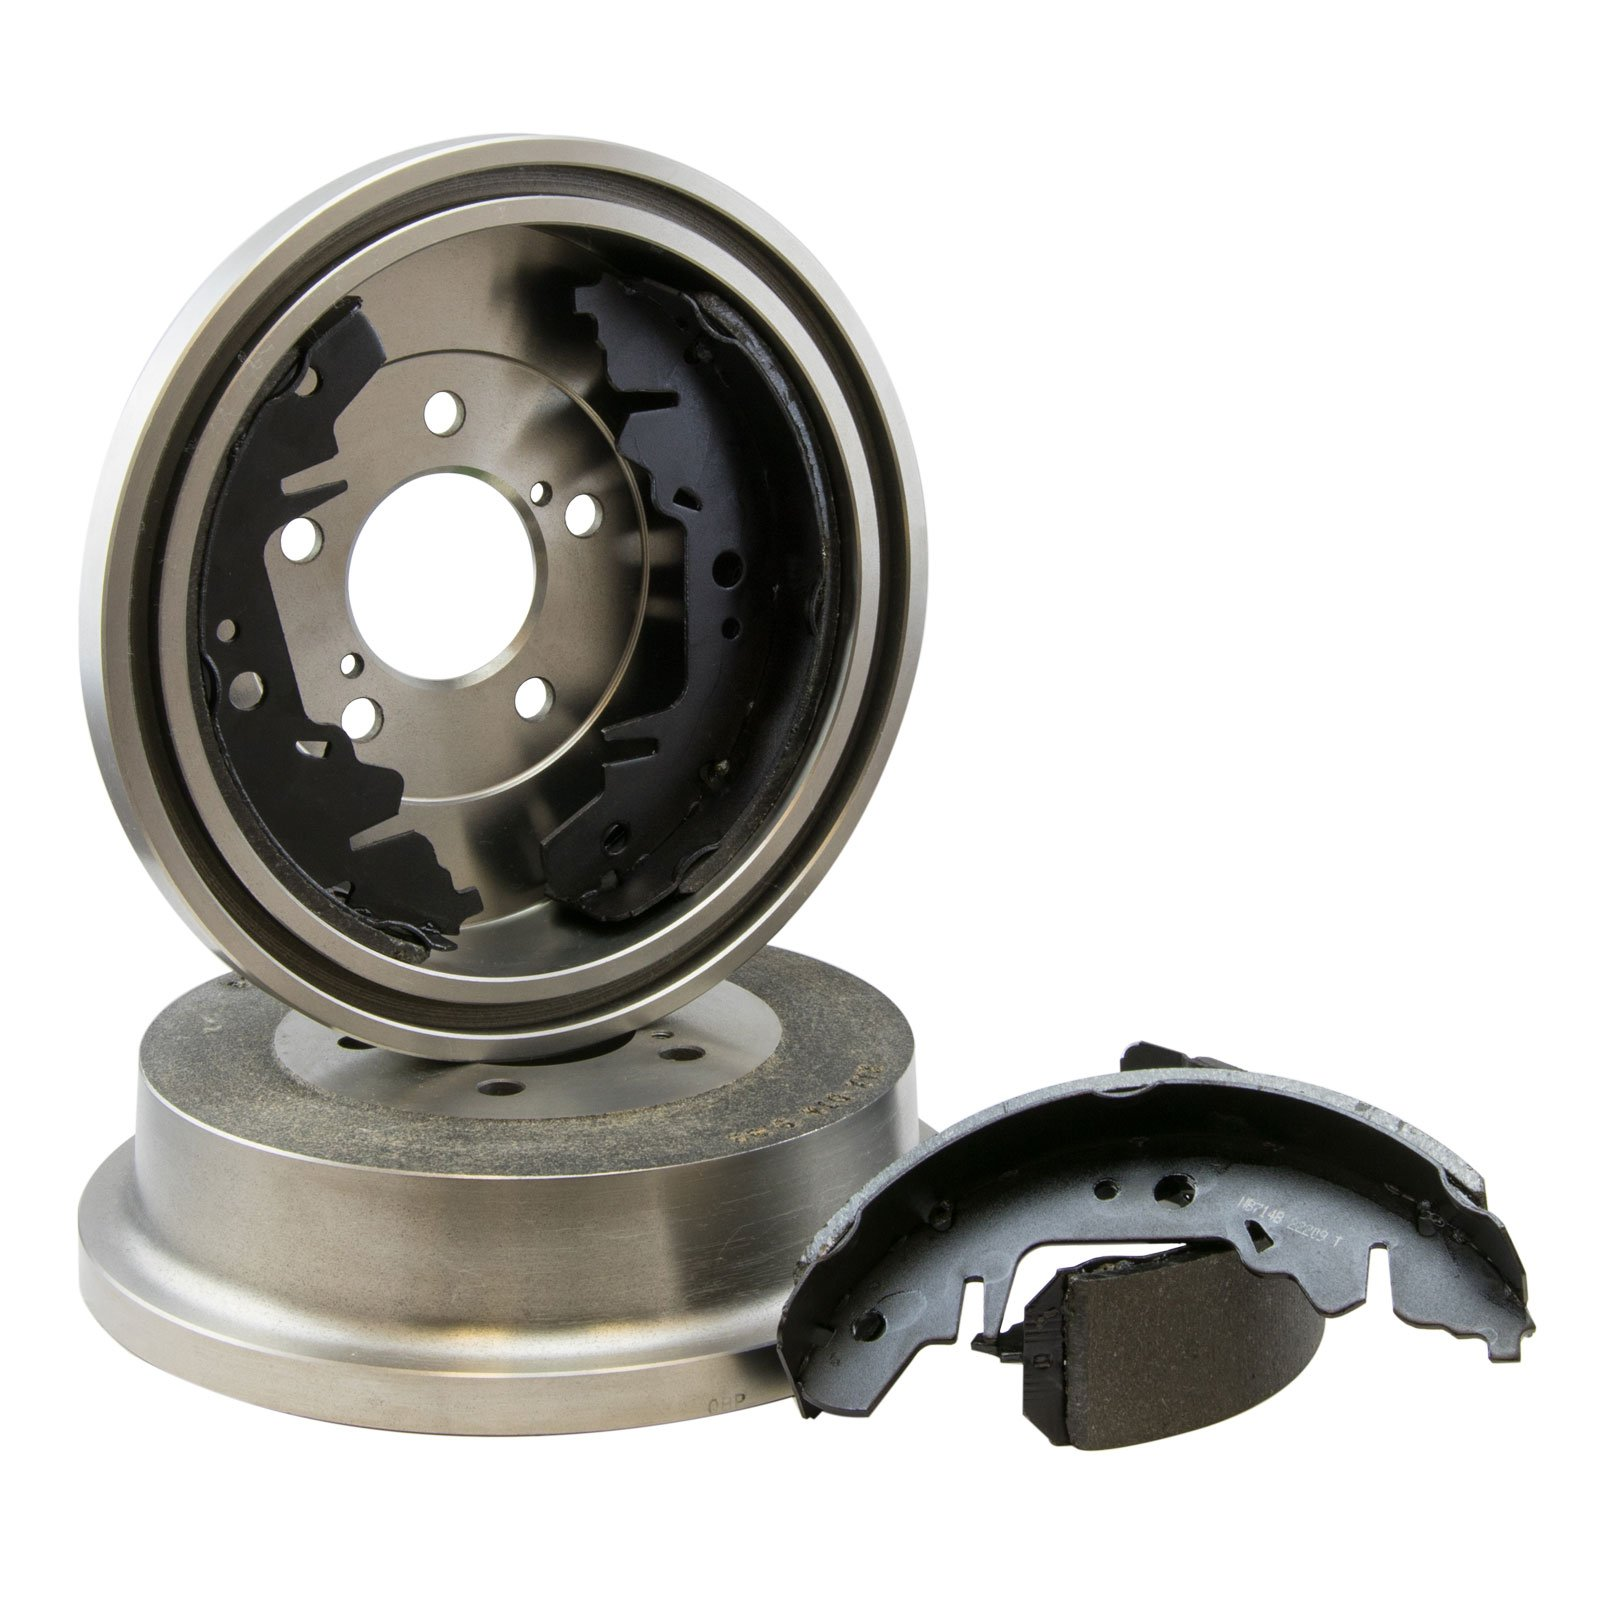 Max DS926042 Rear Premium OE Replacement Drums and Shoes Combo Brake Kit by Max Advanced Brakes